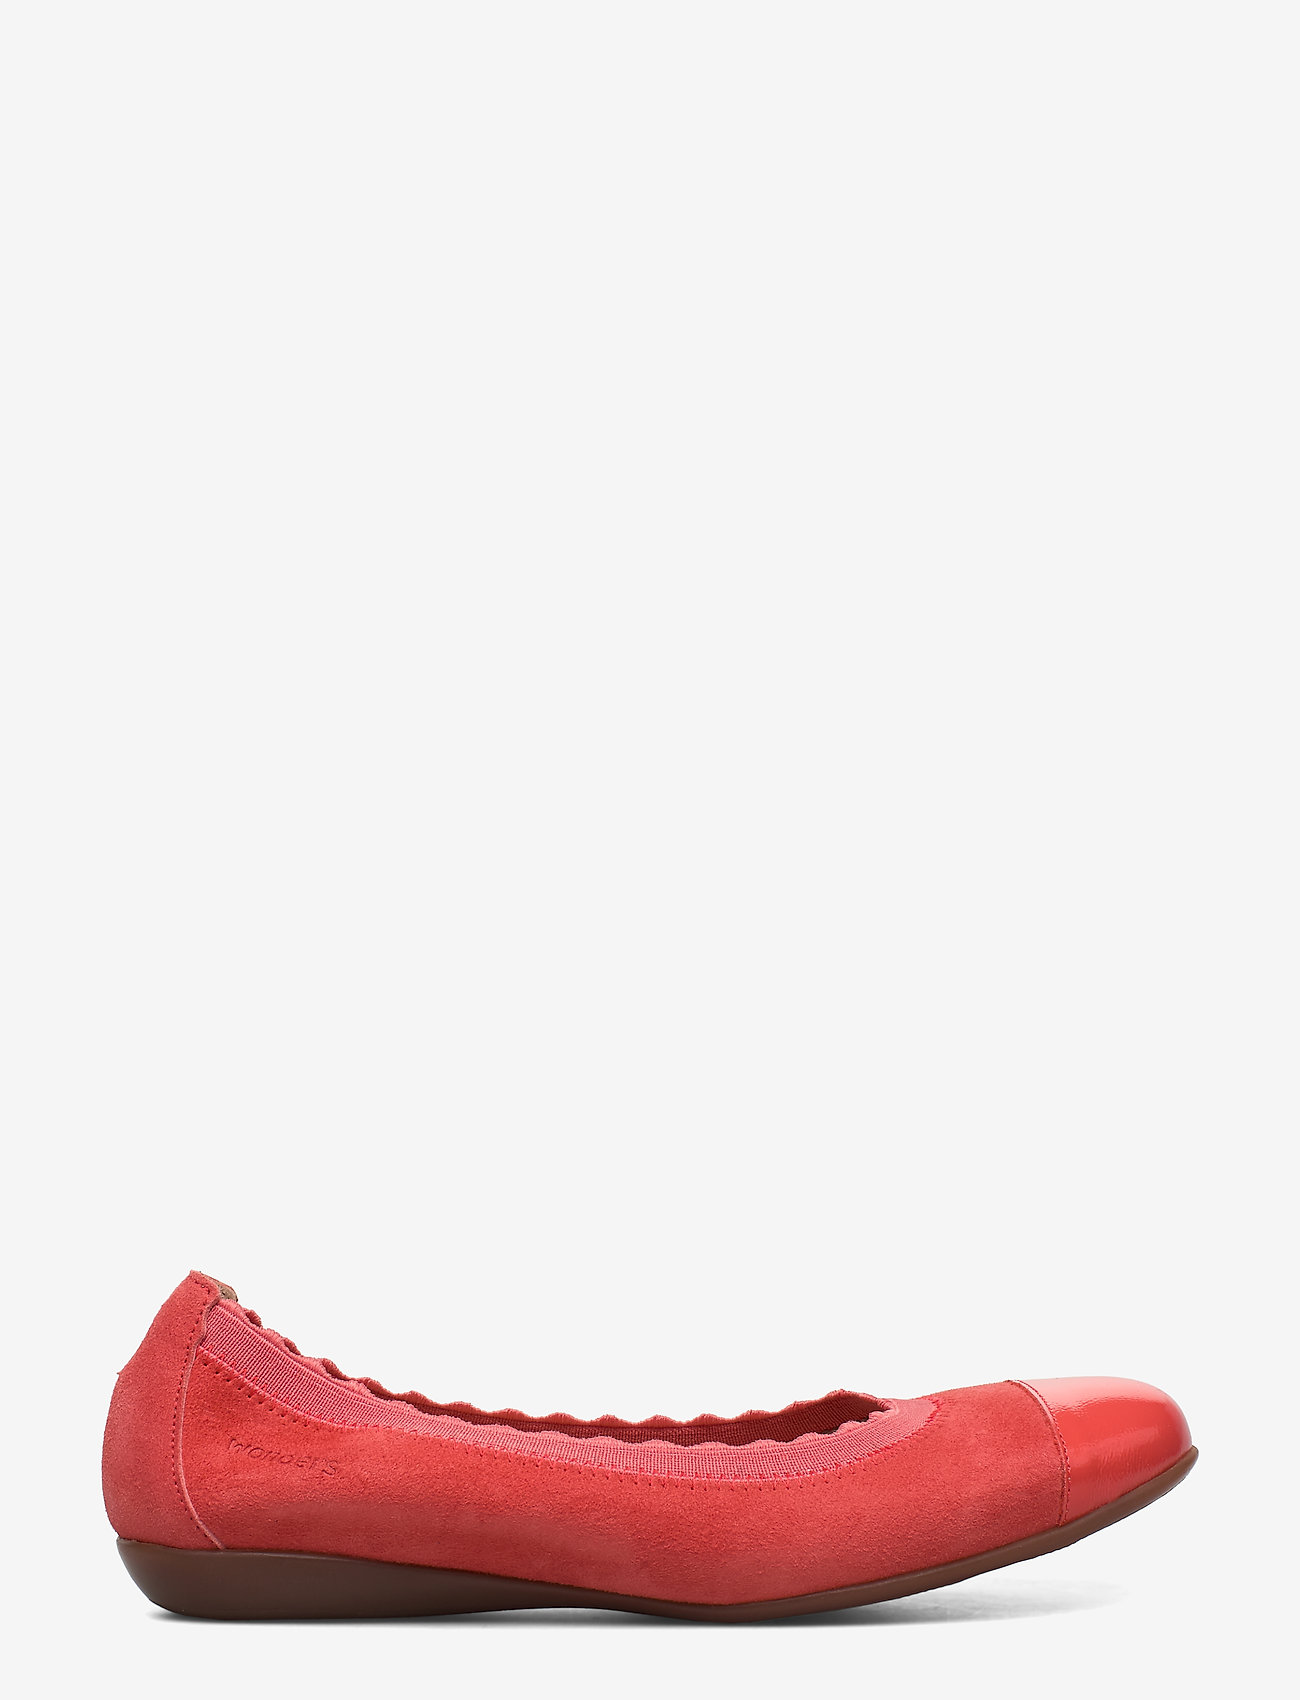 Wonders - A-6170 - loafers - coral - 1